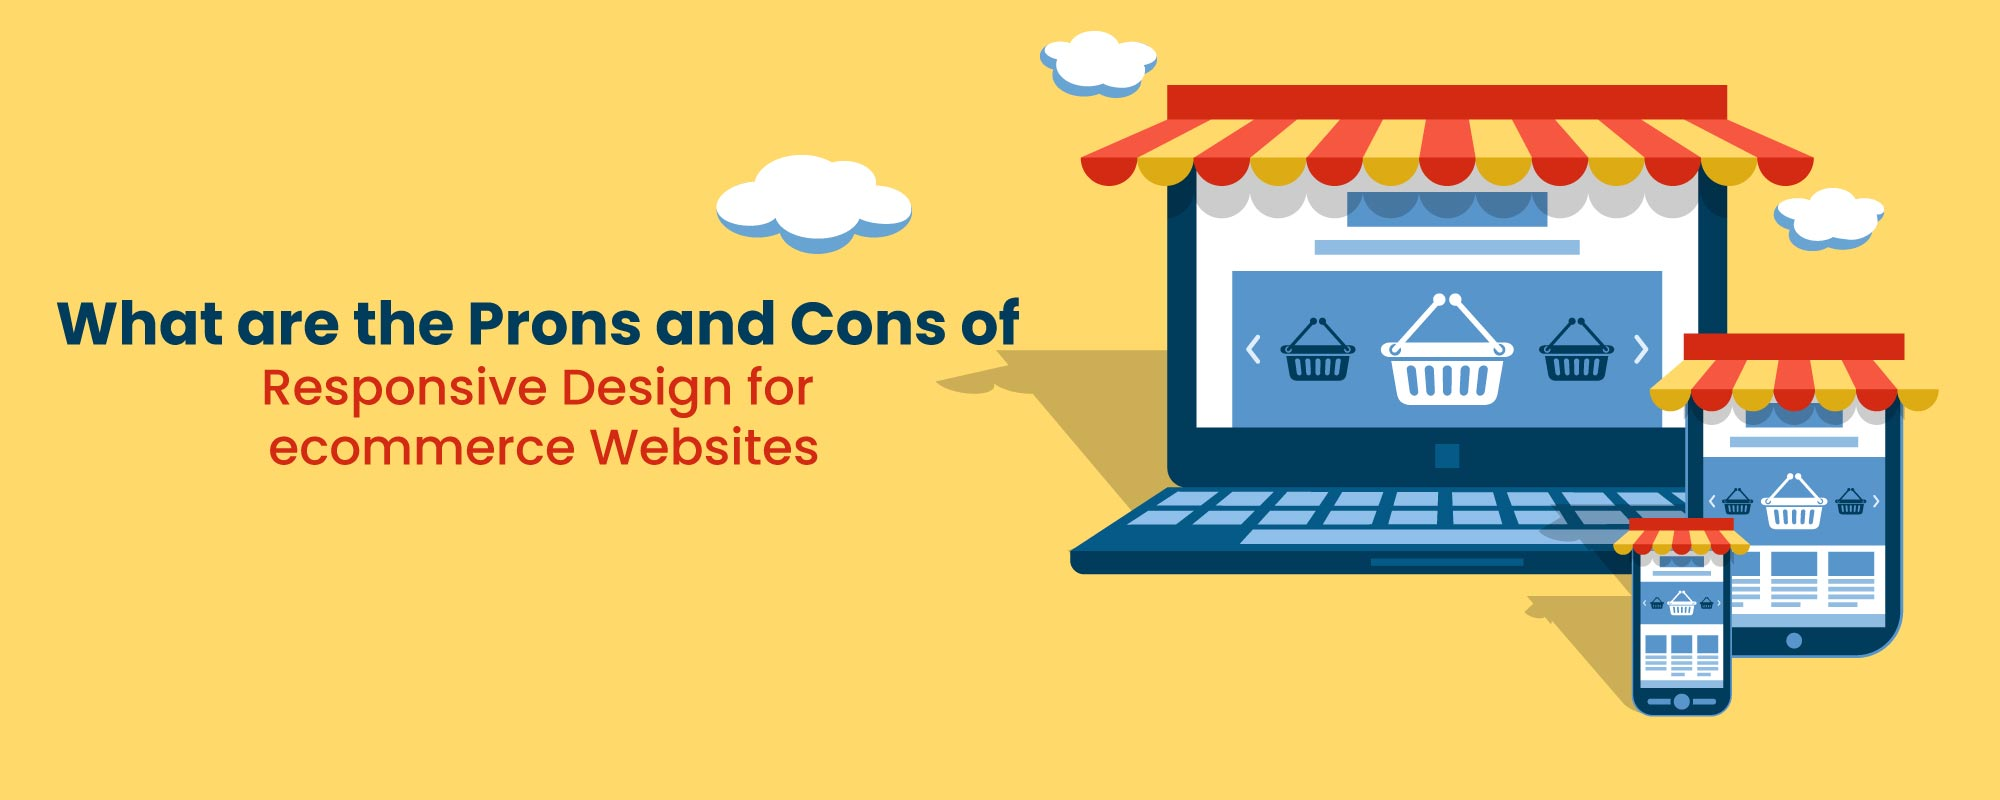 What Is Responsive Design Pros And Cons Of Responsive Web: What Are The Pros And Cons Of Responsive Design